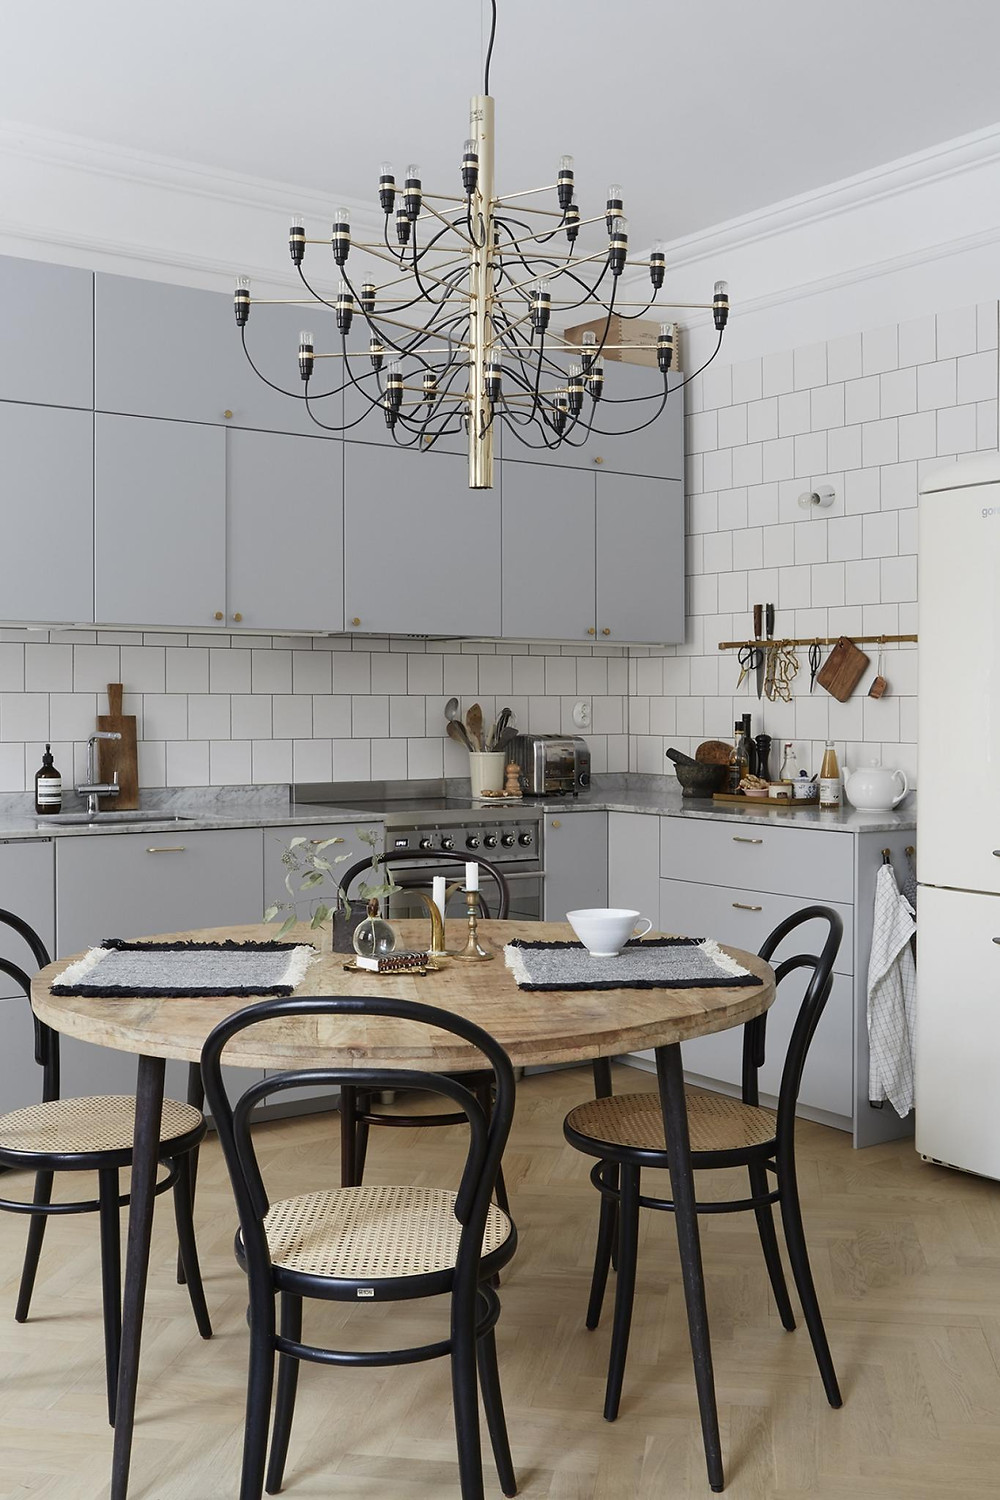 Scandinavian interior design kitchen decor with square tiles and retro fridge, off grey cabinets with brass handles and bistro chairs